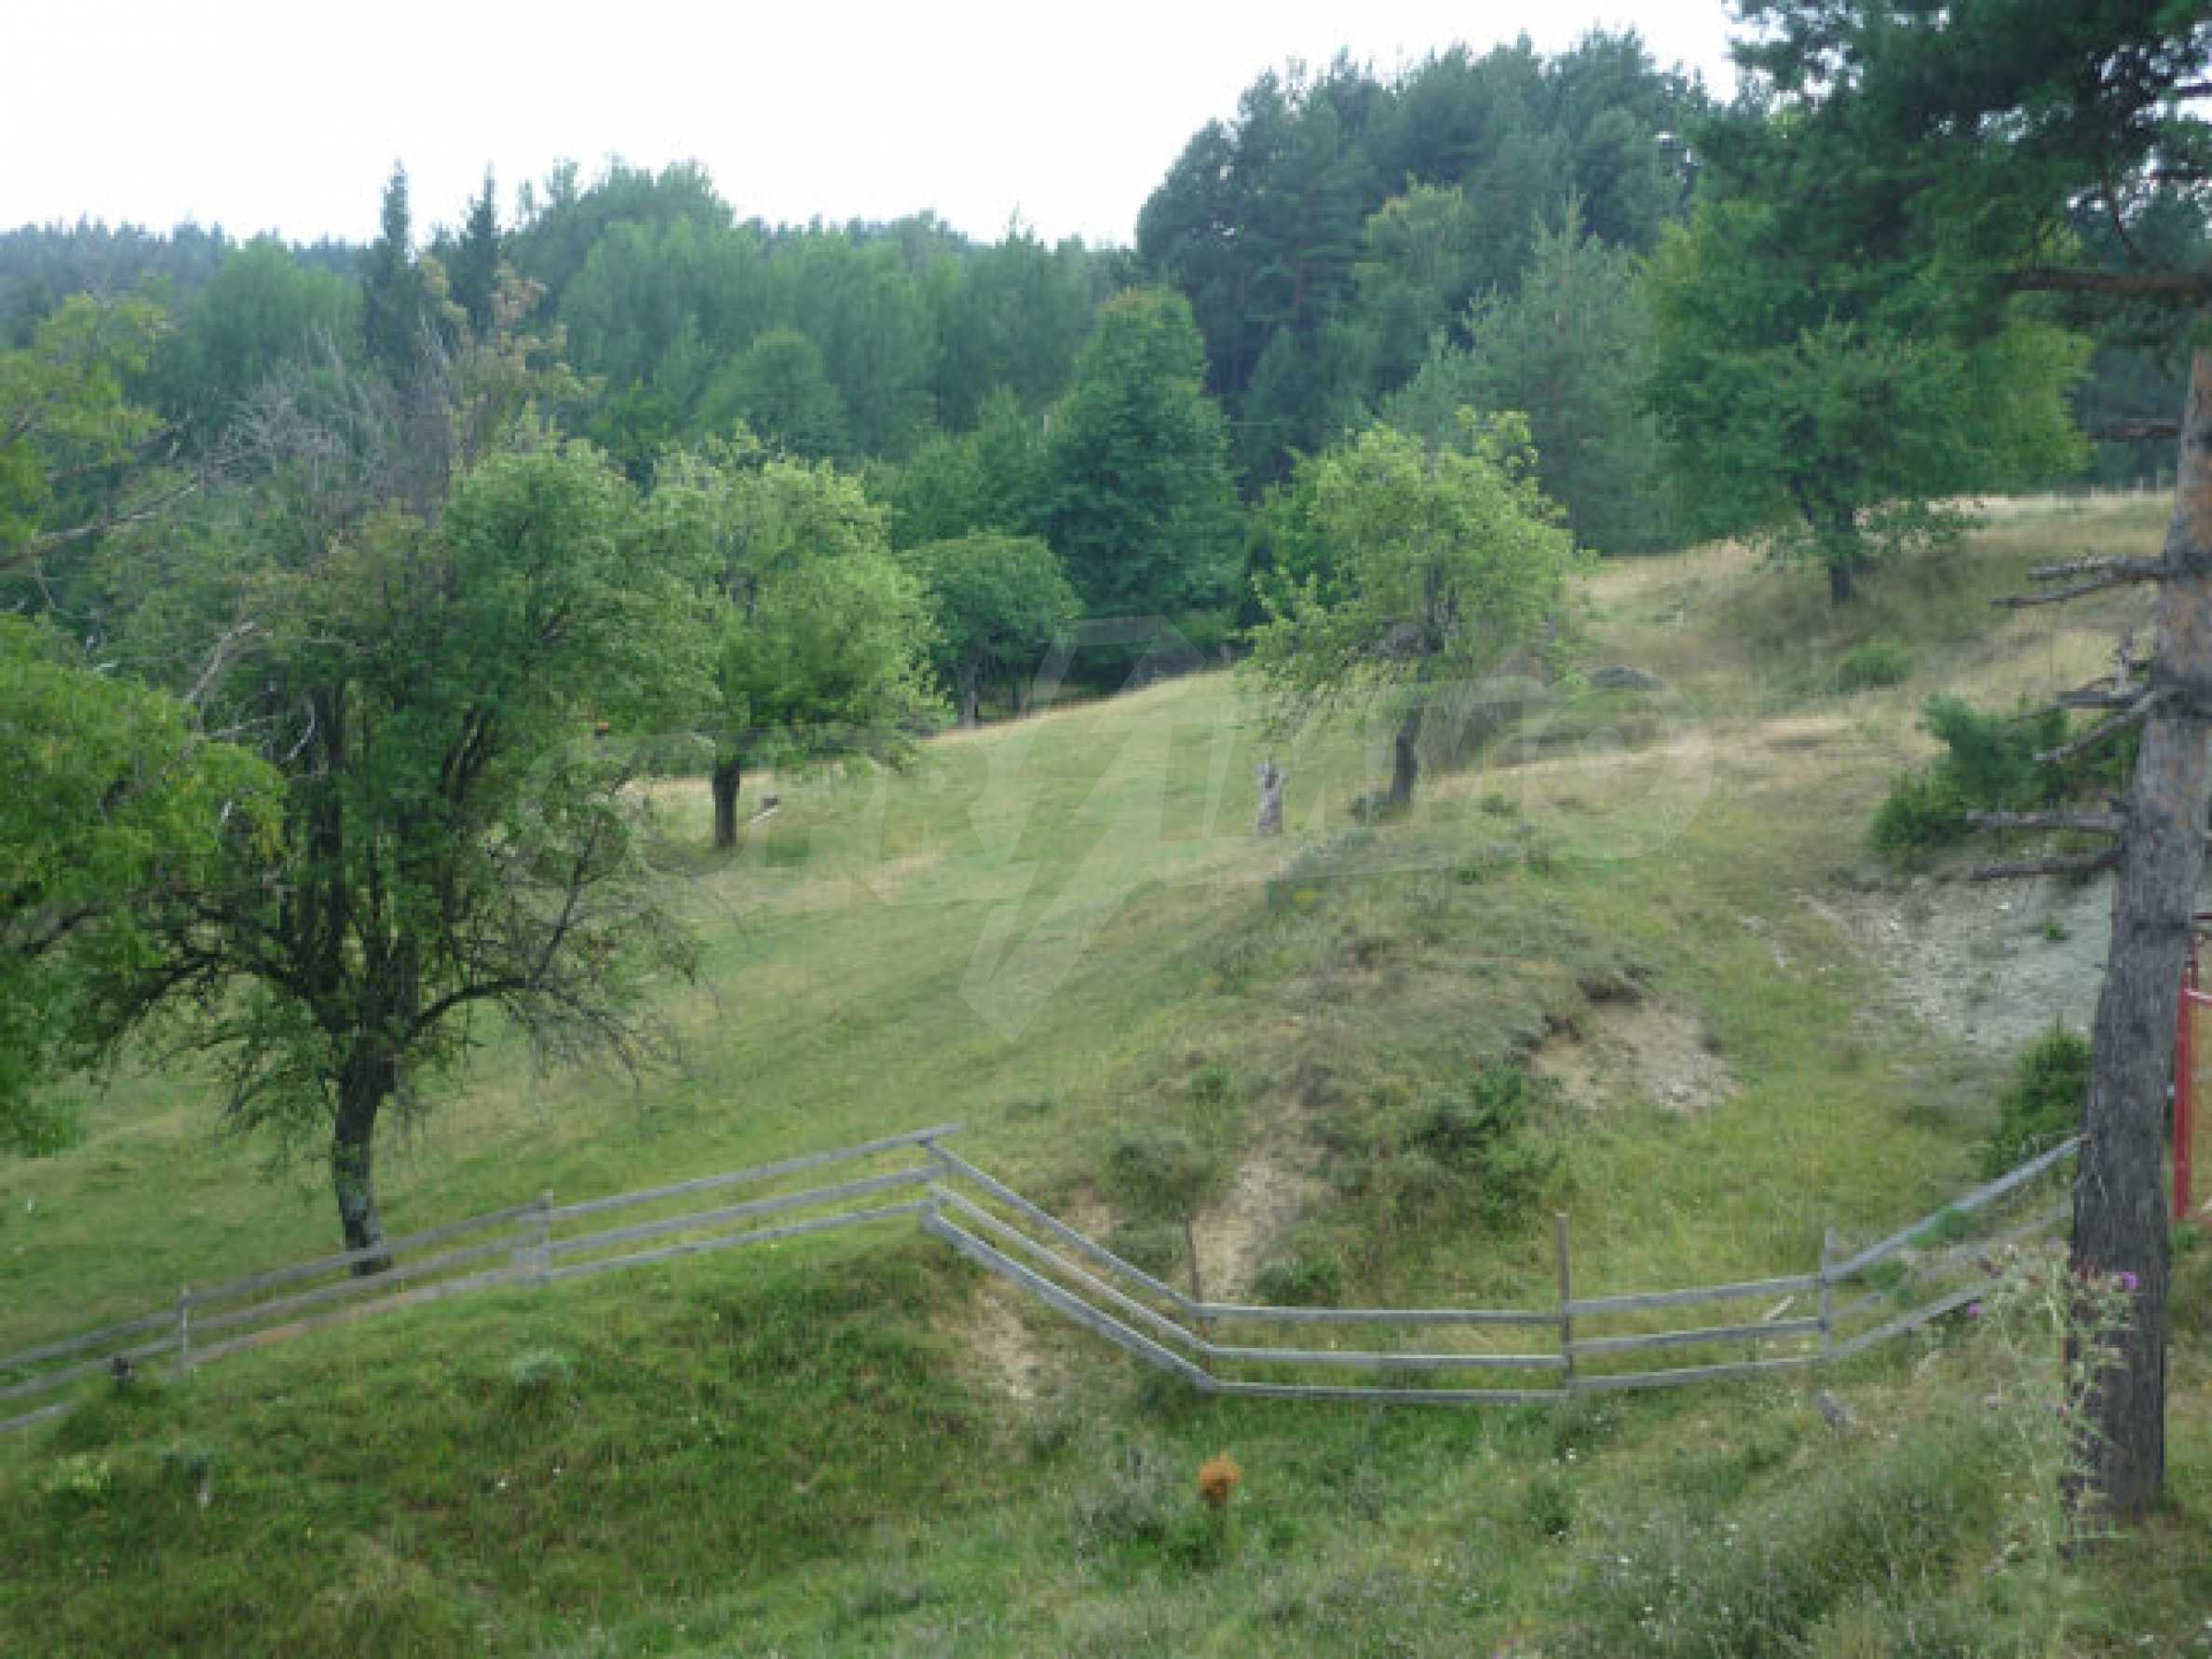 Spacious regulated plot of land 15 km from the resort town of Smolyan